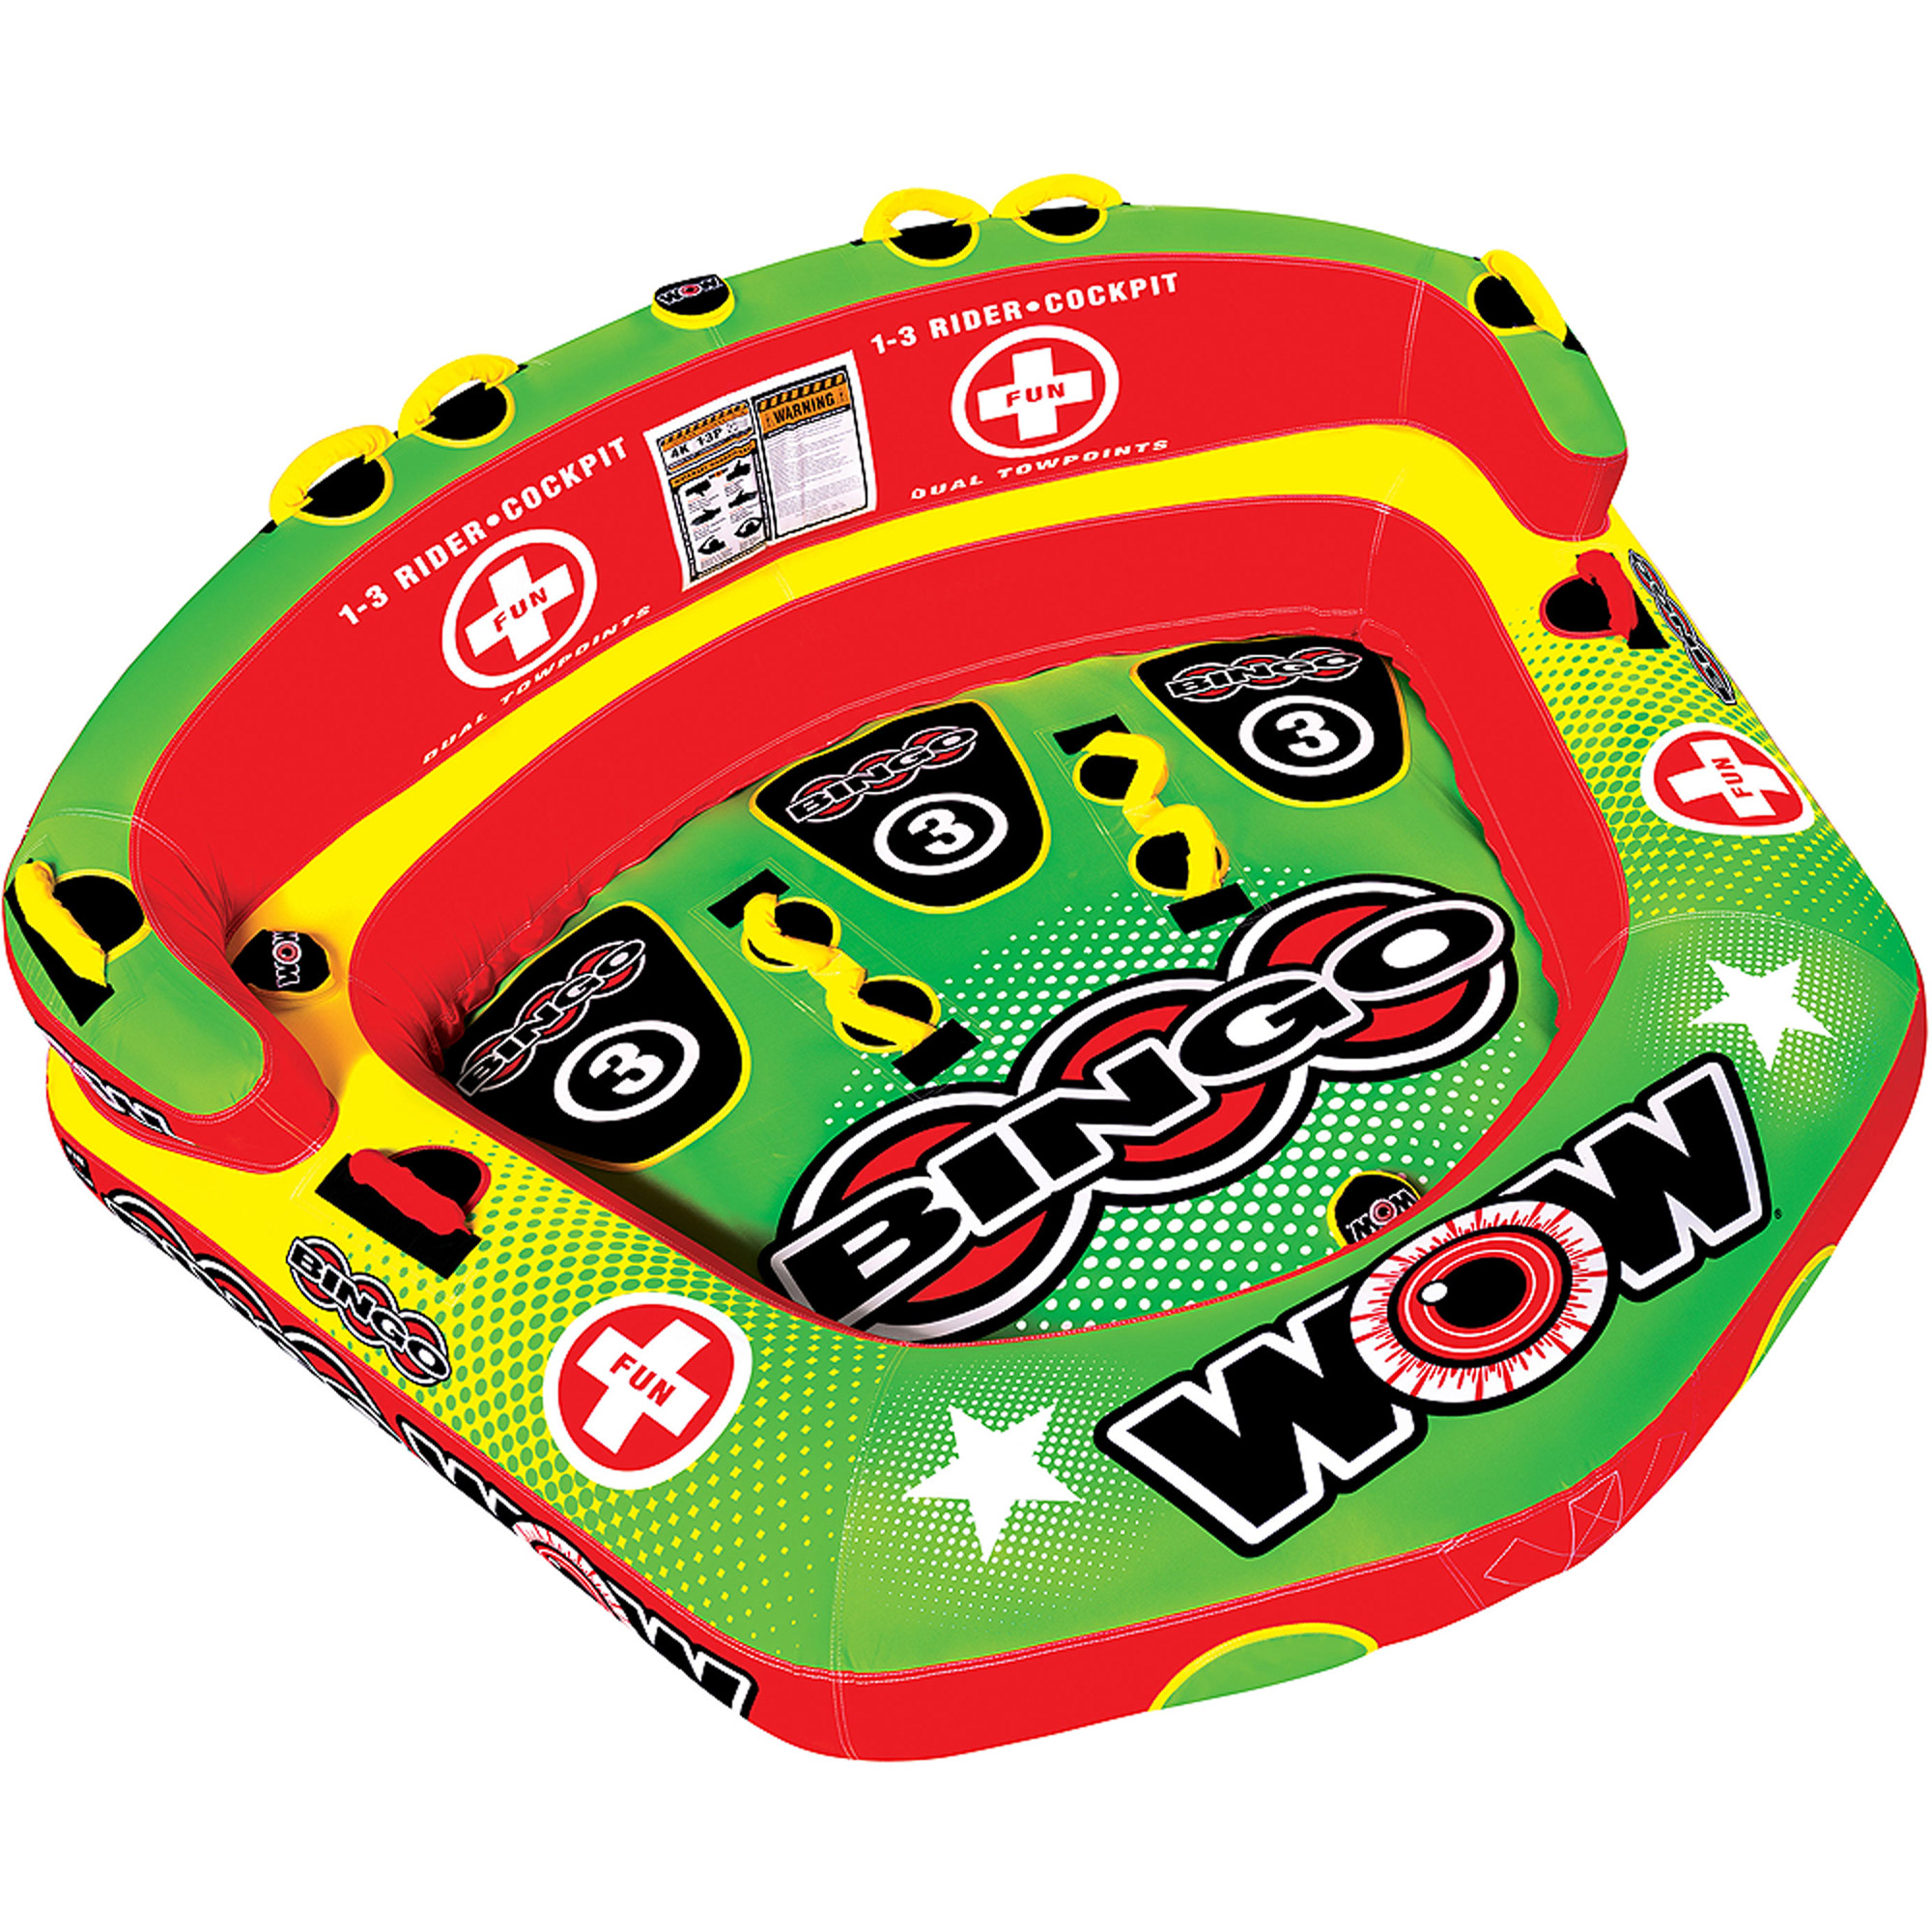 WOW Bingo Towable, 3 Rider by Generic